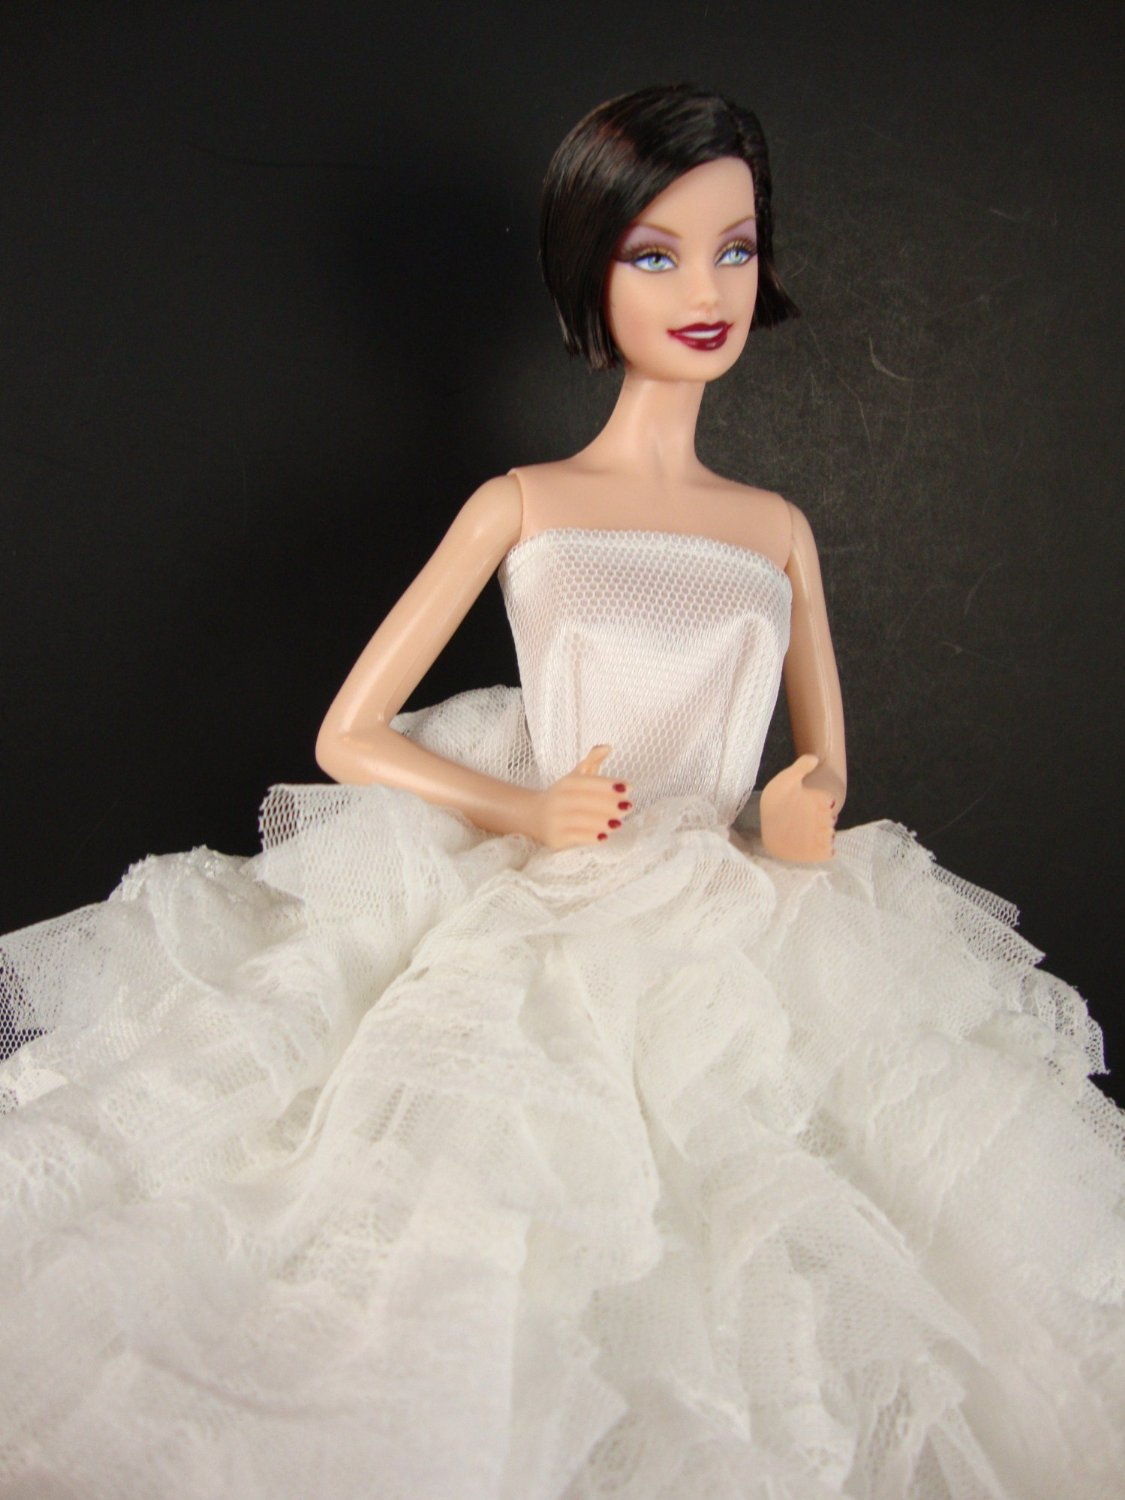 Amazon Olivias Doll Closet Beautiful White Gown With Tons Of Ruffles Ball Made To Fit The Barbie Toys Games